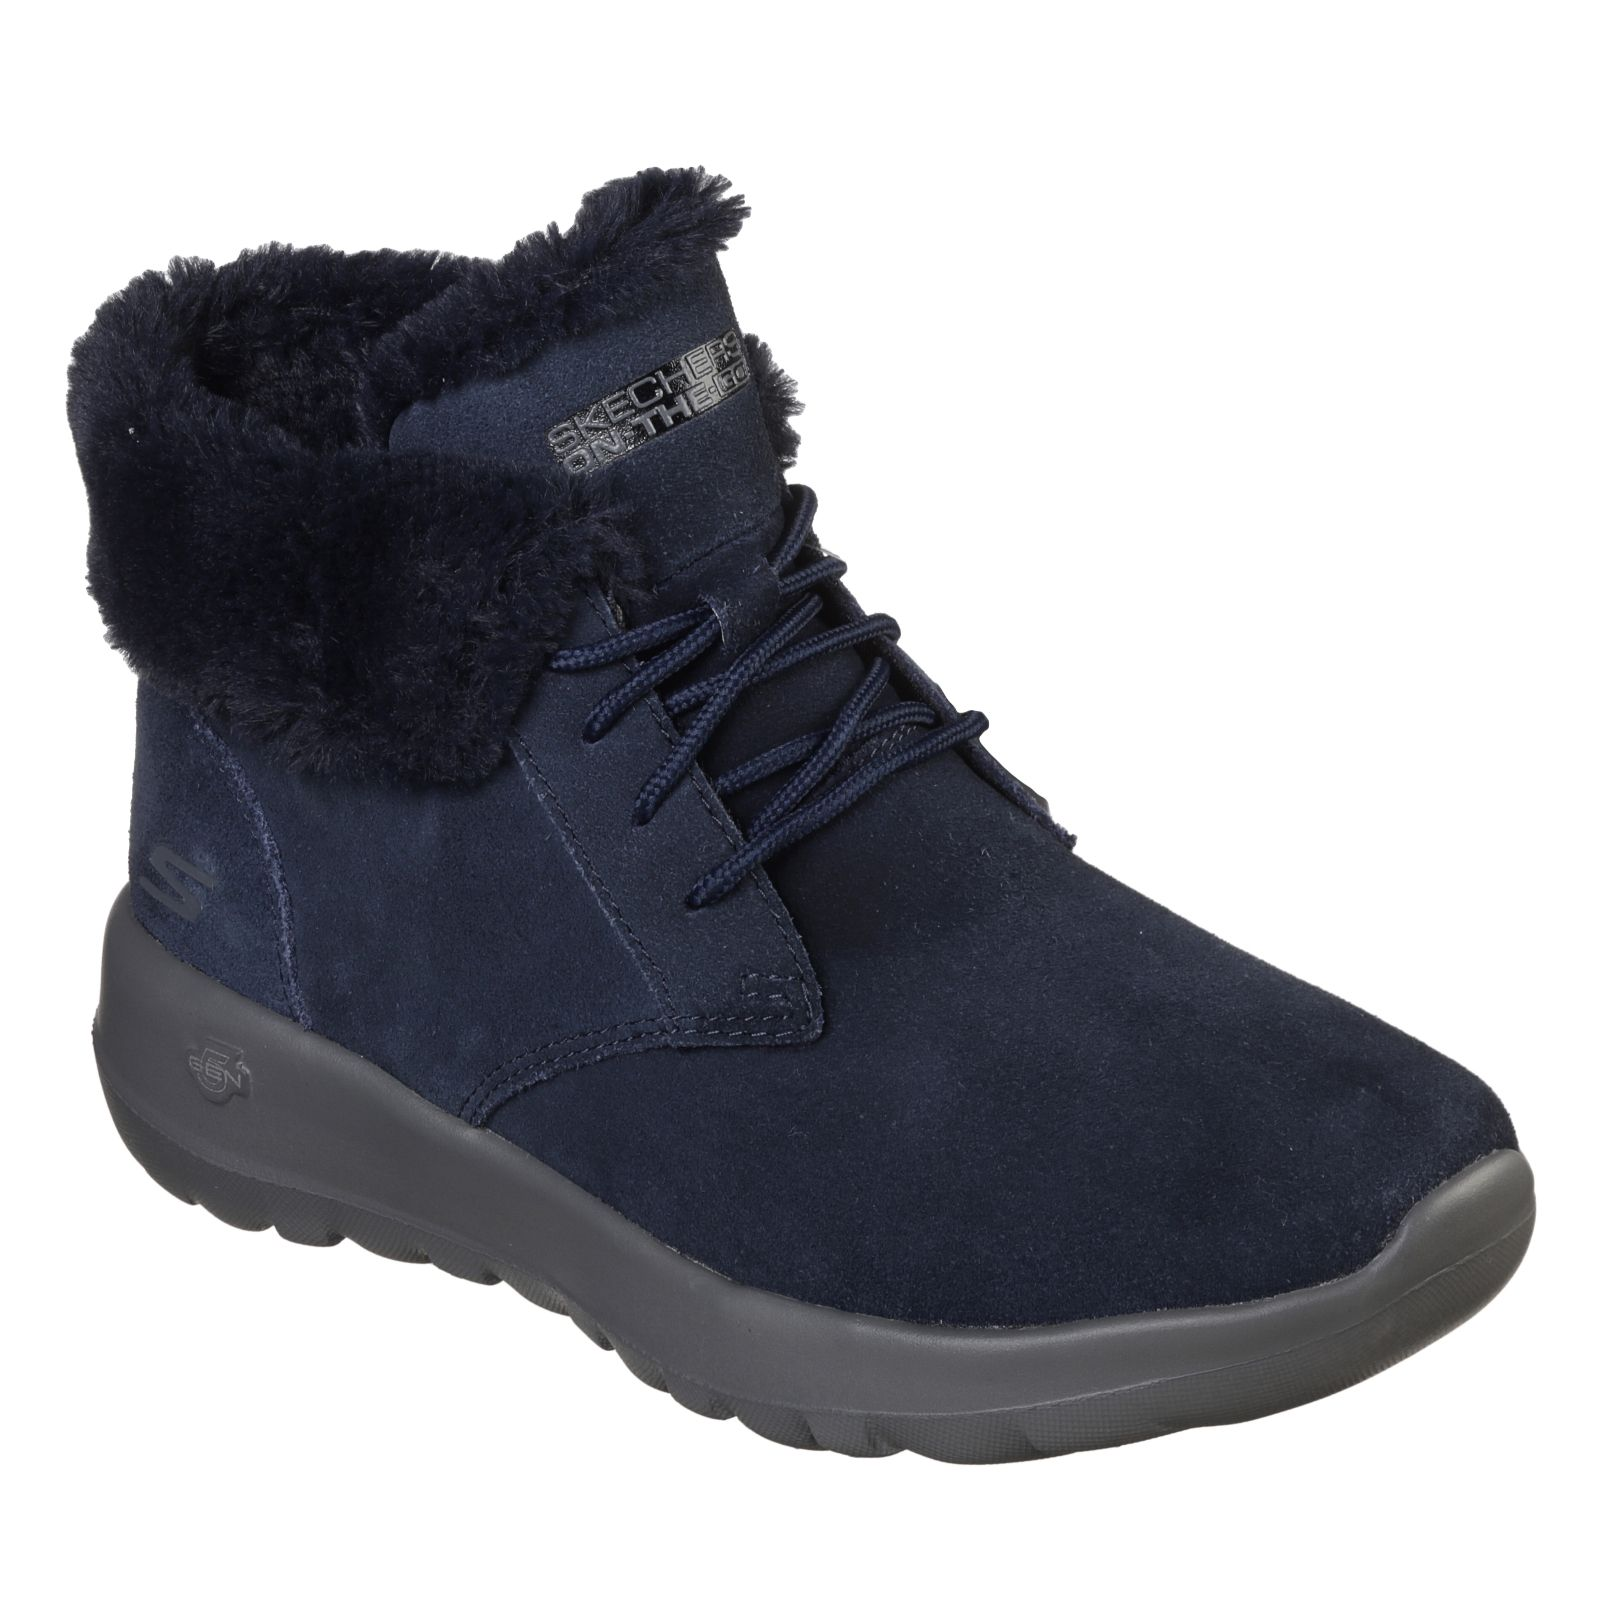 f139d3cc79de Skechers On The Go Joy Lace Up Trainer Boot - QVC UK